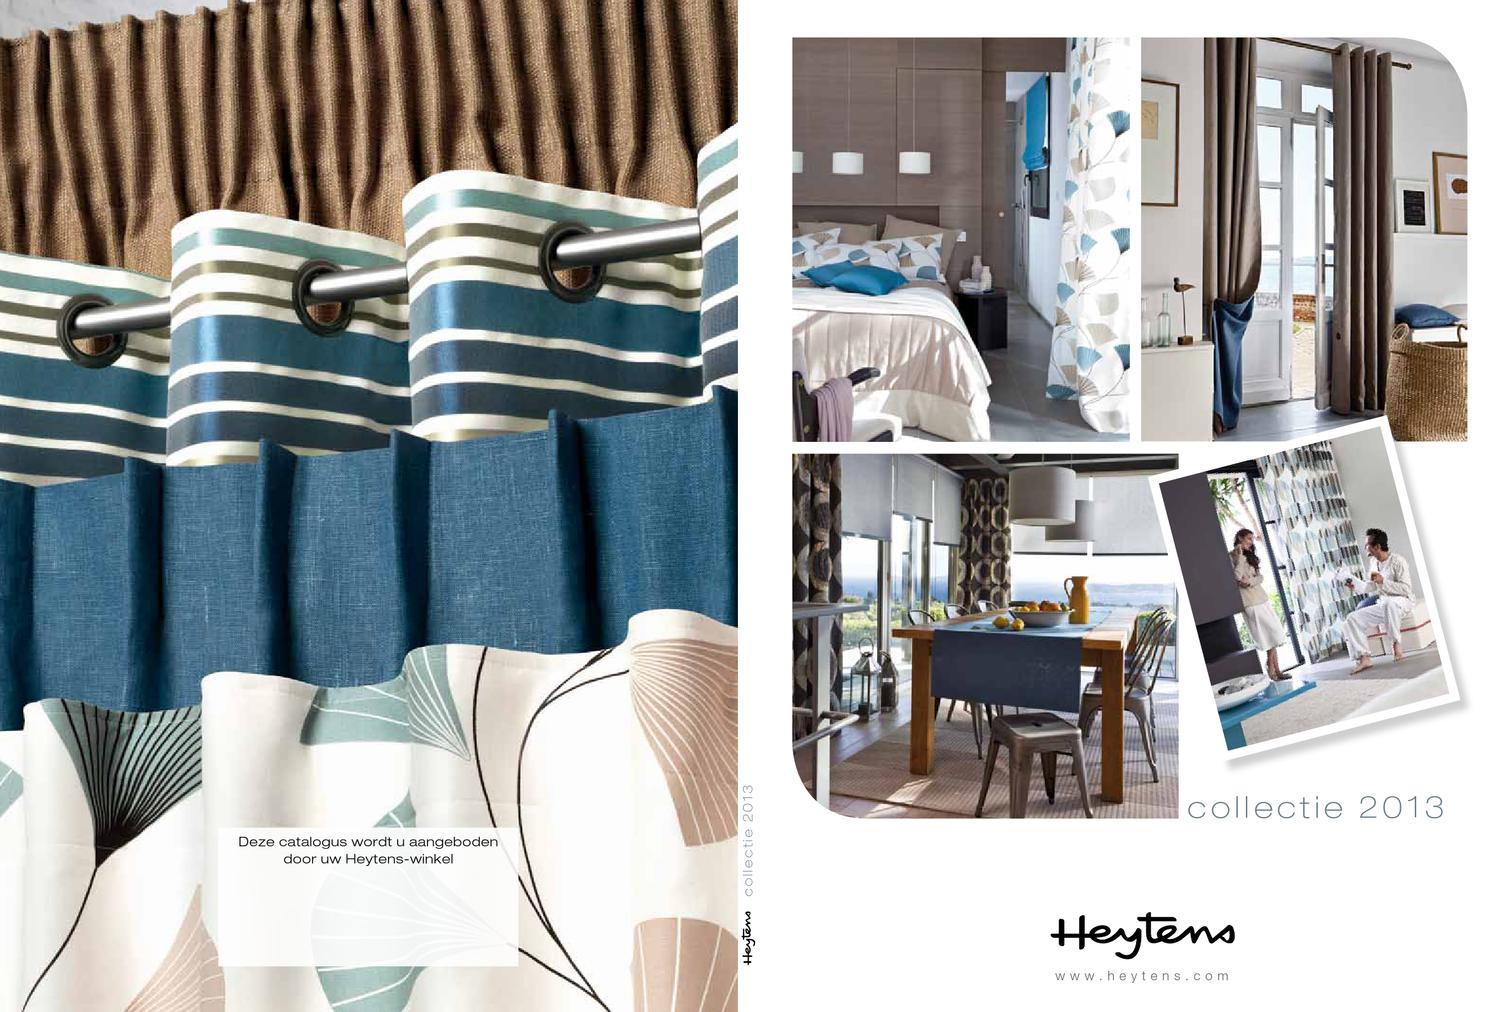 heytens collectie 2013 by mehdi tekaya issuu. Black Bedroom Furniture Sets. Home Design Ideas